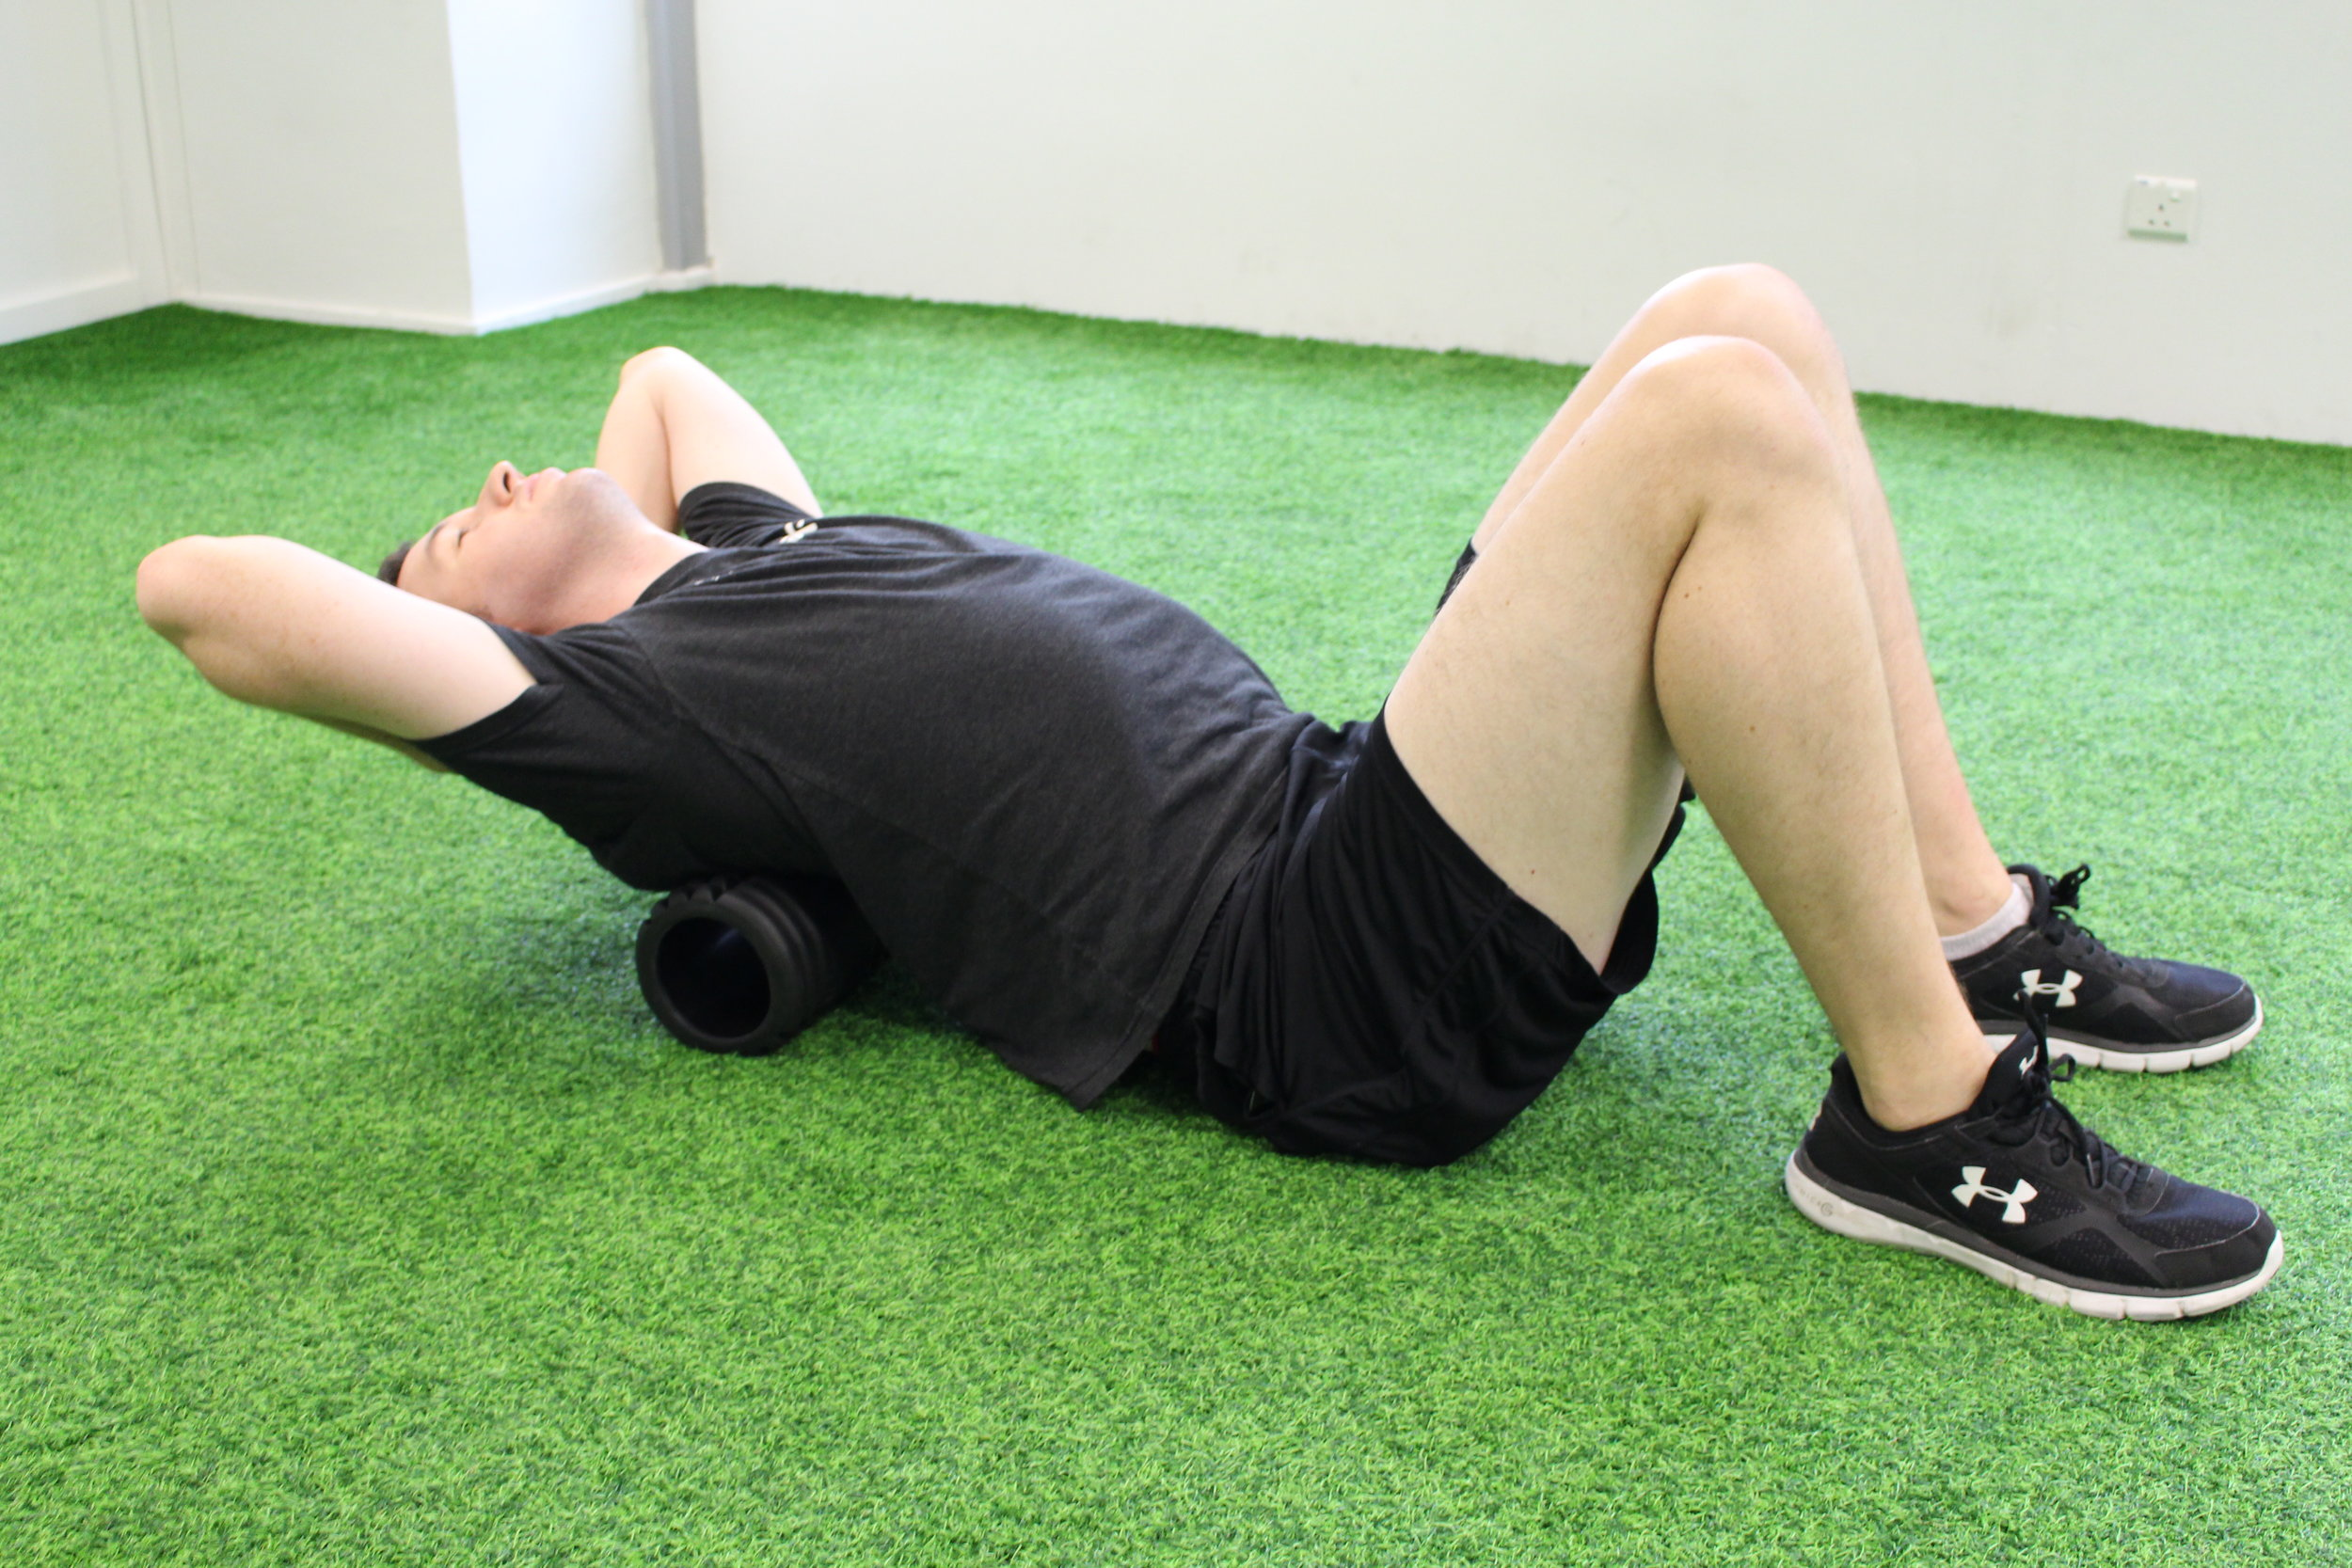 Using a foam roller between the shoulder blades, mobilise the upper back by extending over the foam roller. Hold for two deep breathes and relax. Repeat eight repetitions.